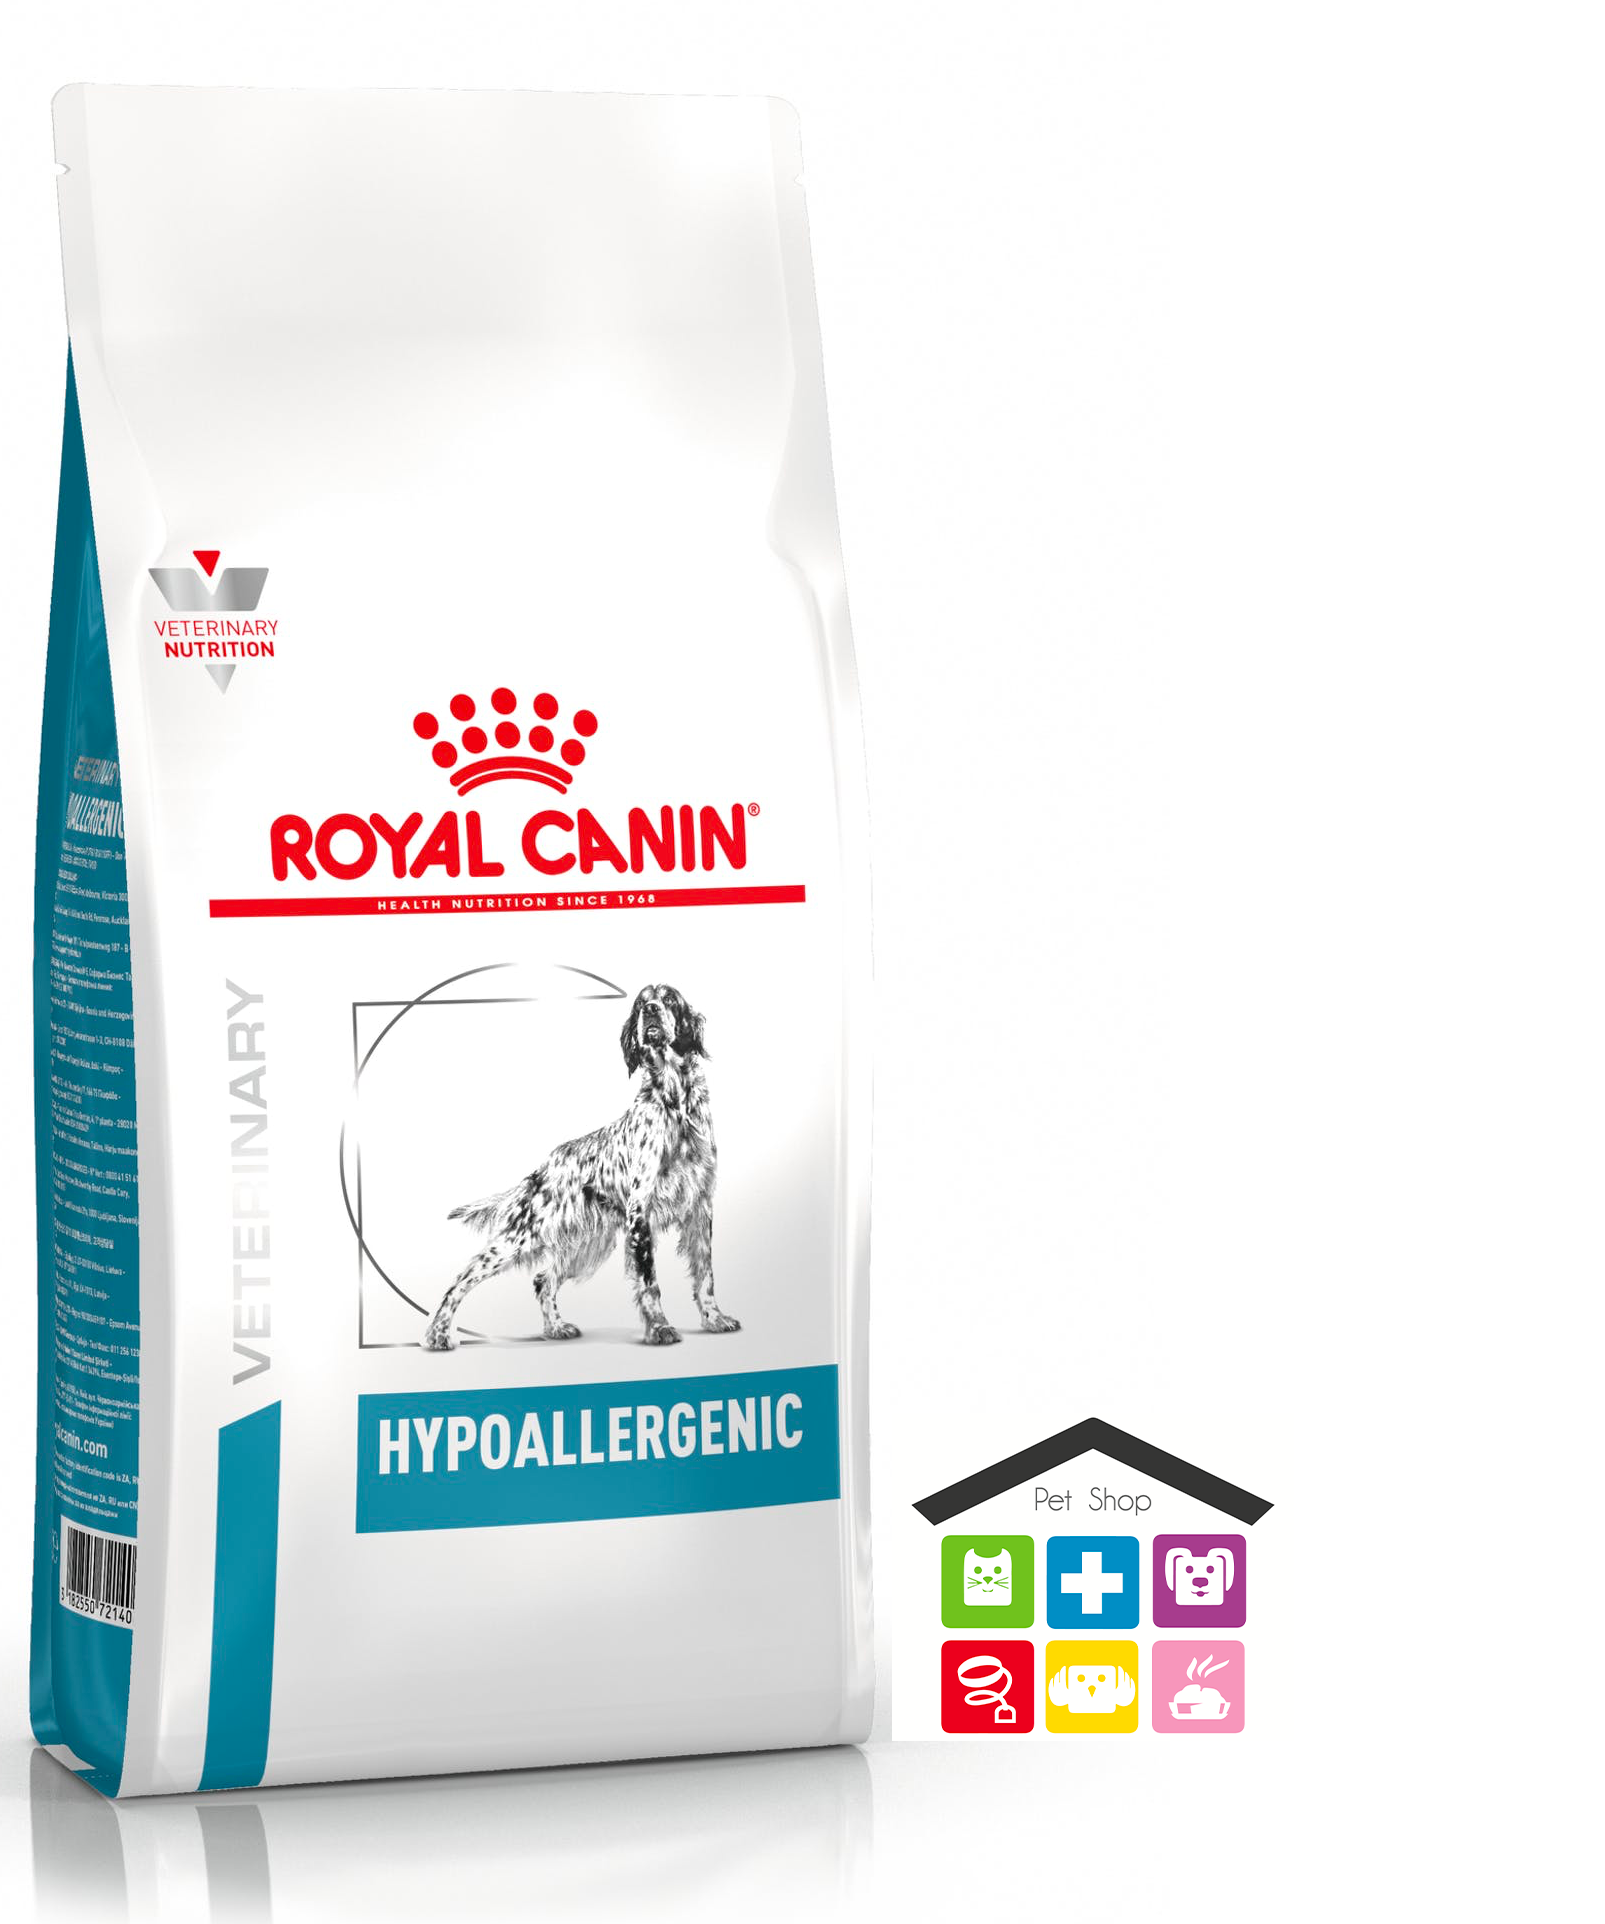 Royal Canin Hypoallergenic DR 21 2/7 / 14 Kg